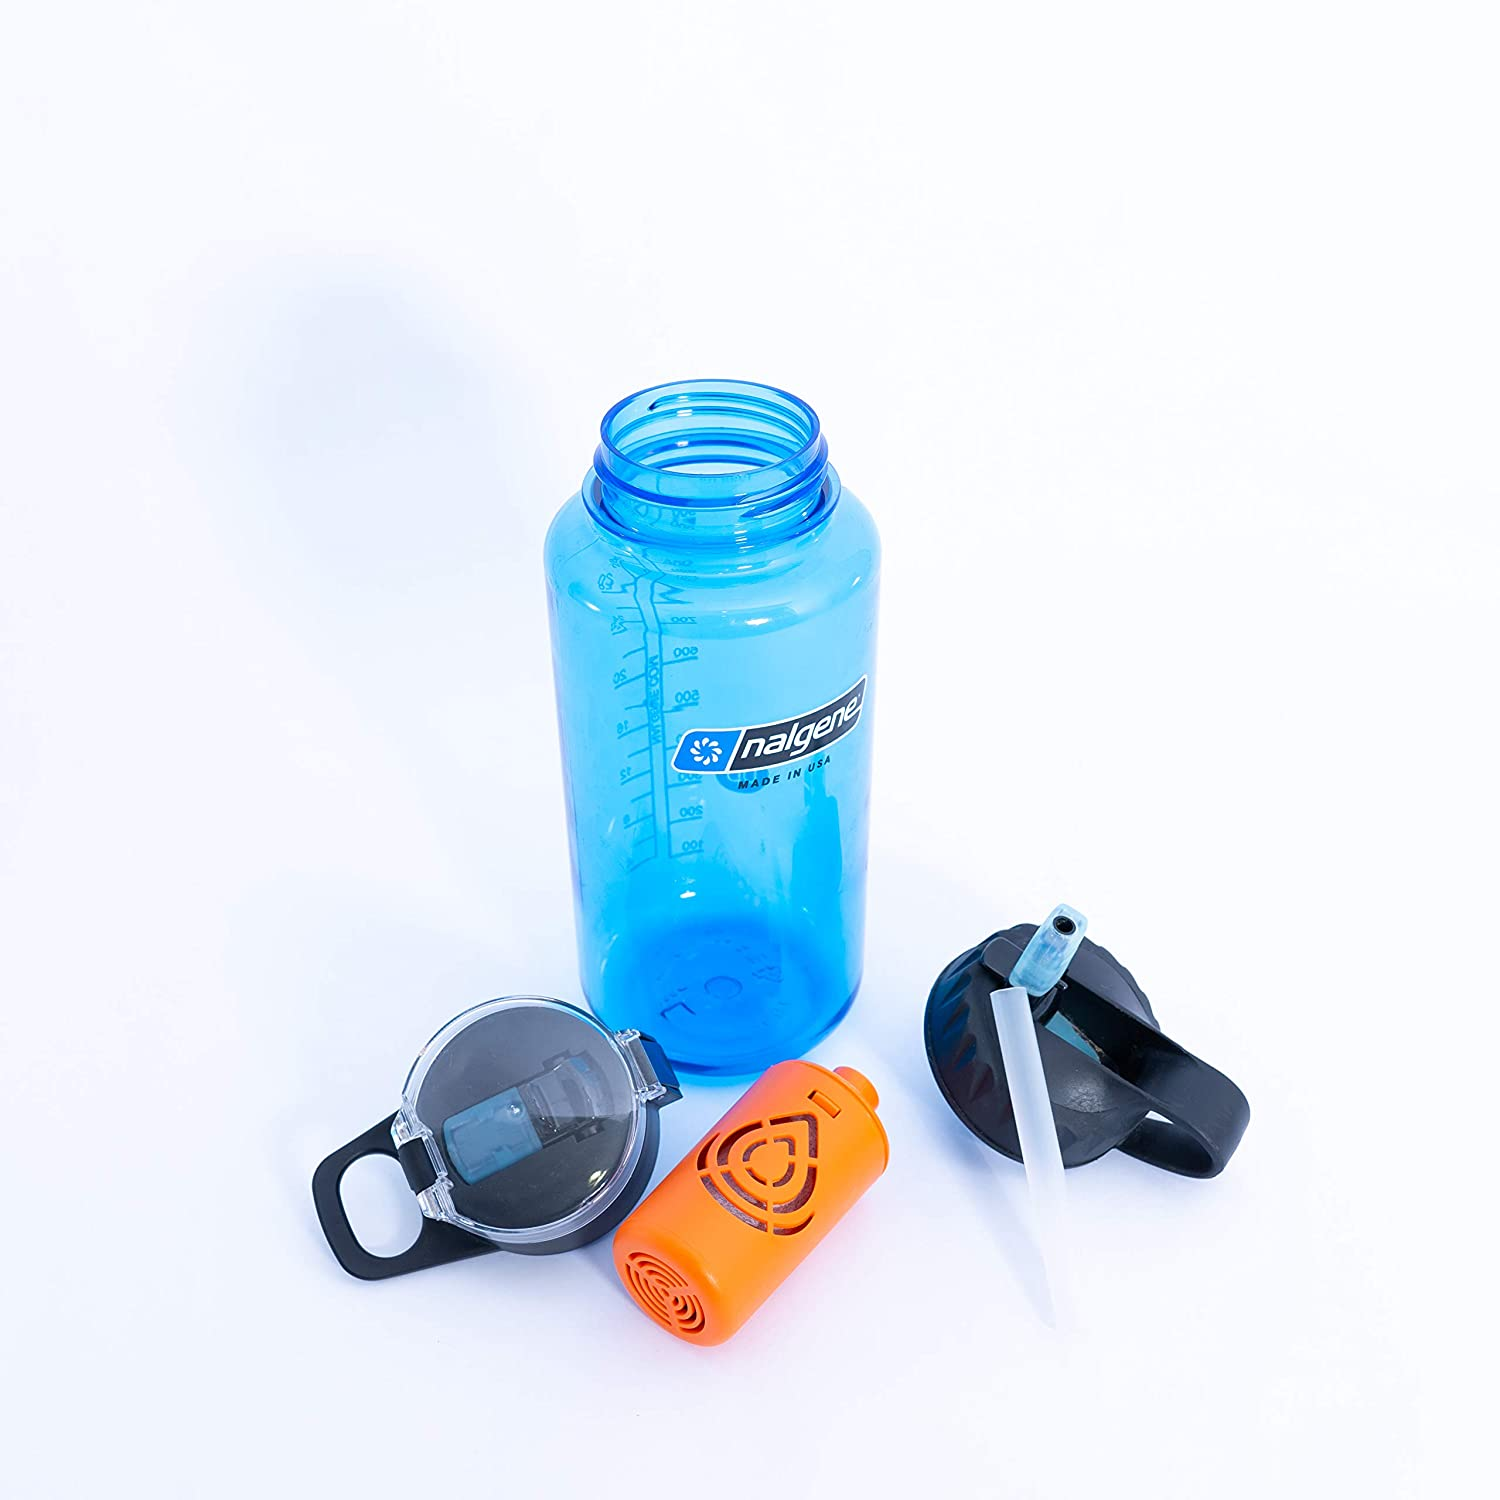 The Outdoor Answer | Nalgene Compatible Water Filter System | Filter Straw Lid Combo Fits Nalgene 32 oz Wide Mouth Bottles | American Made Nano Filter Removes 99.9999% of Fresh Water Contaminants